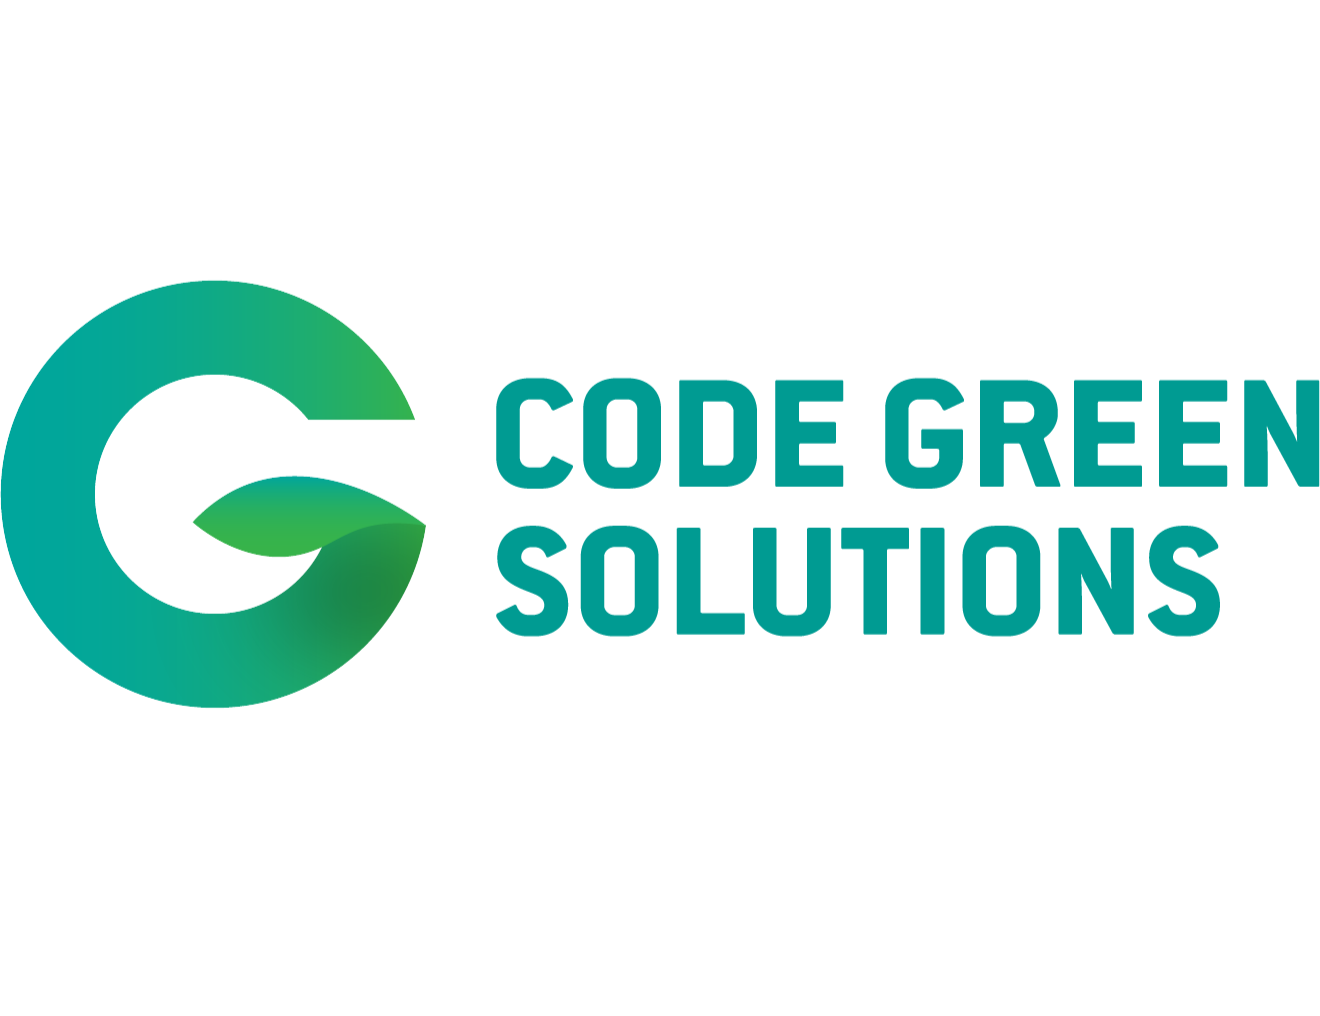 Code Green Solutions